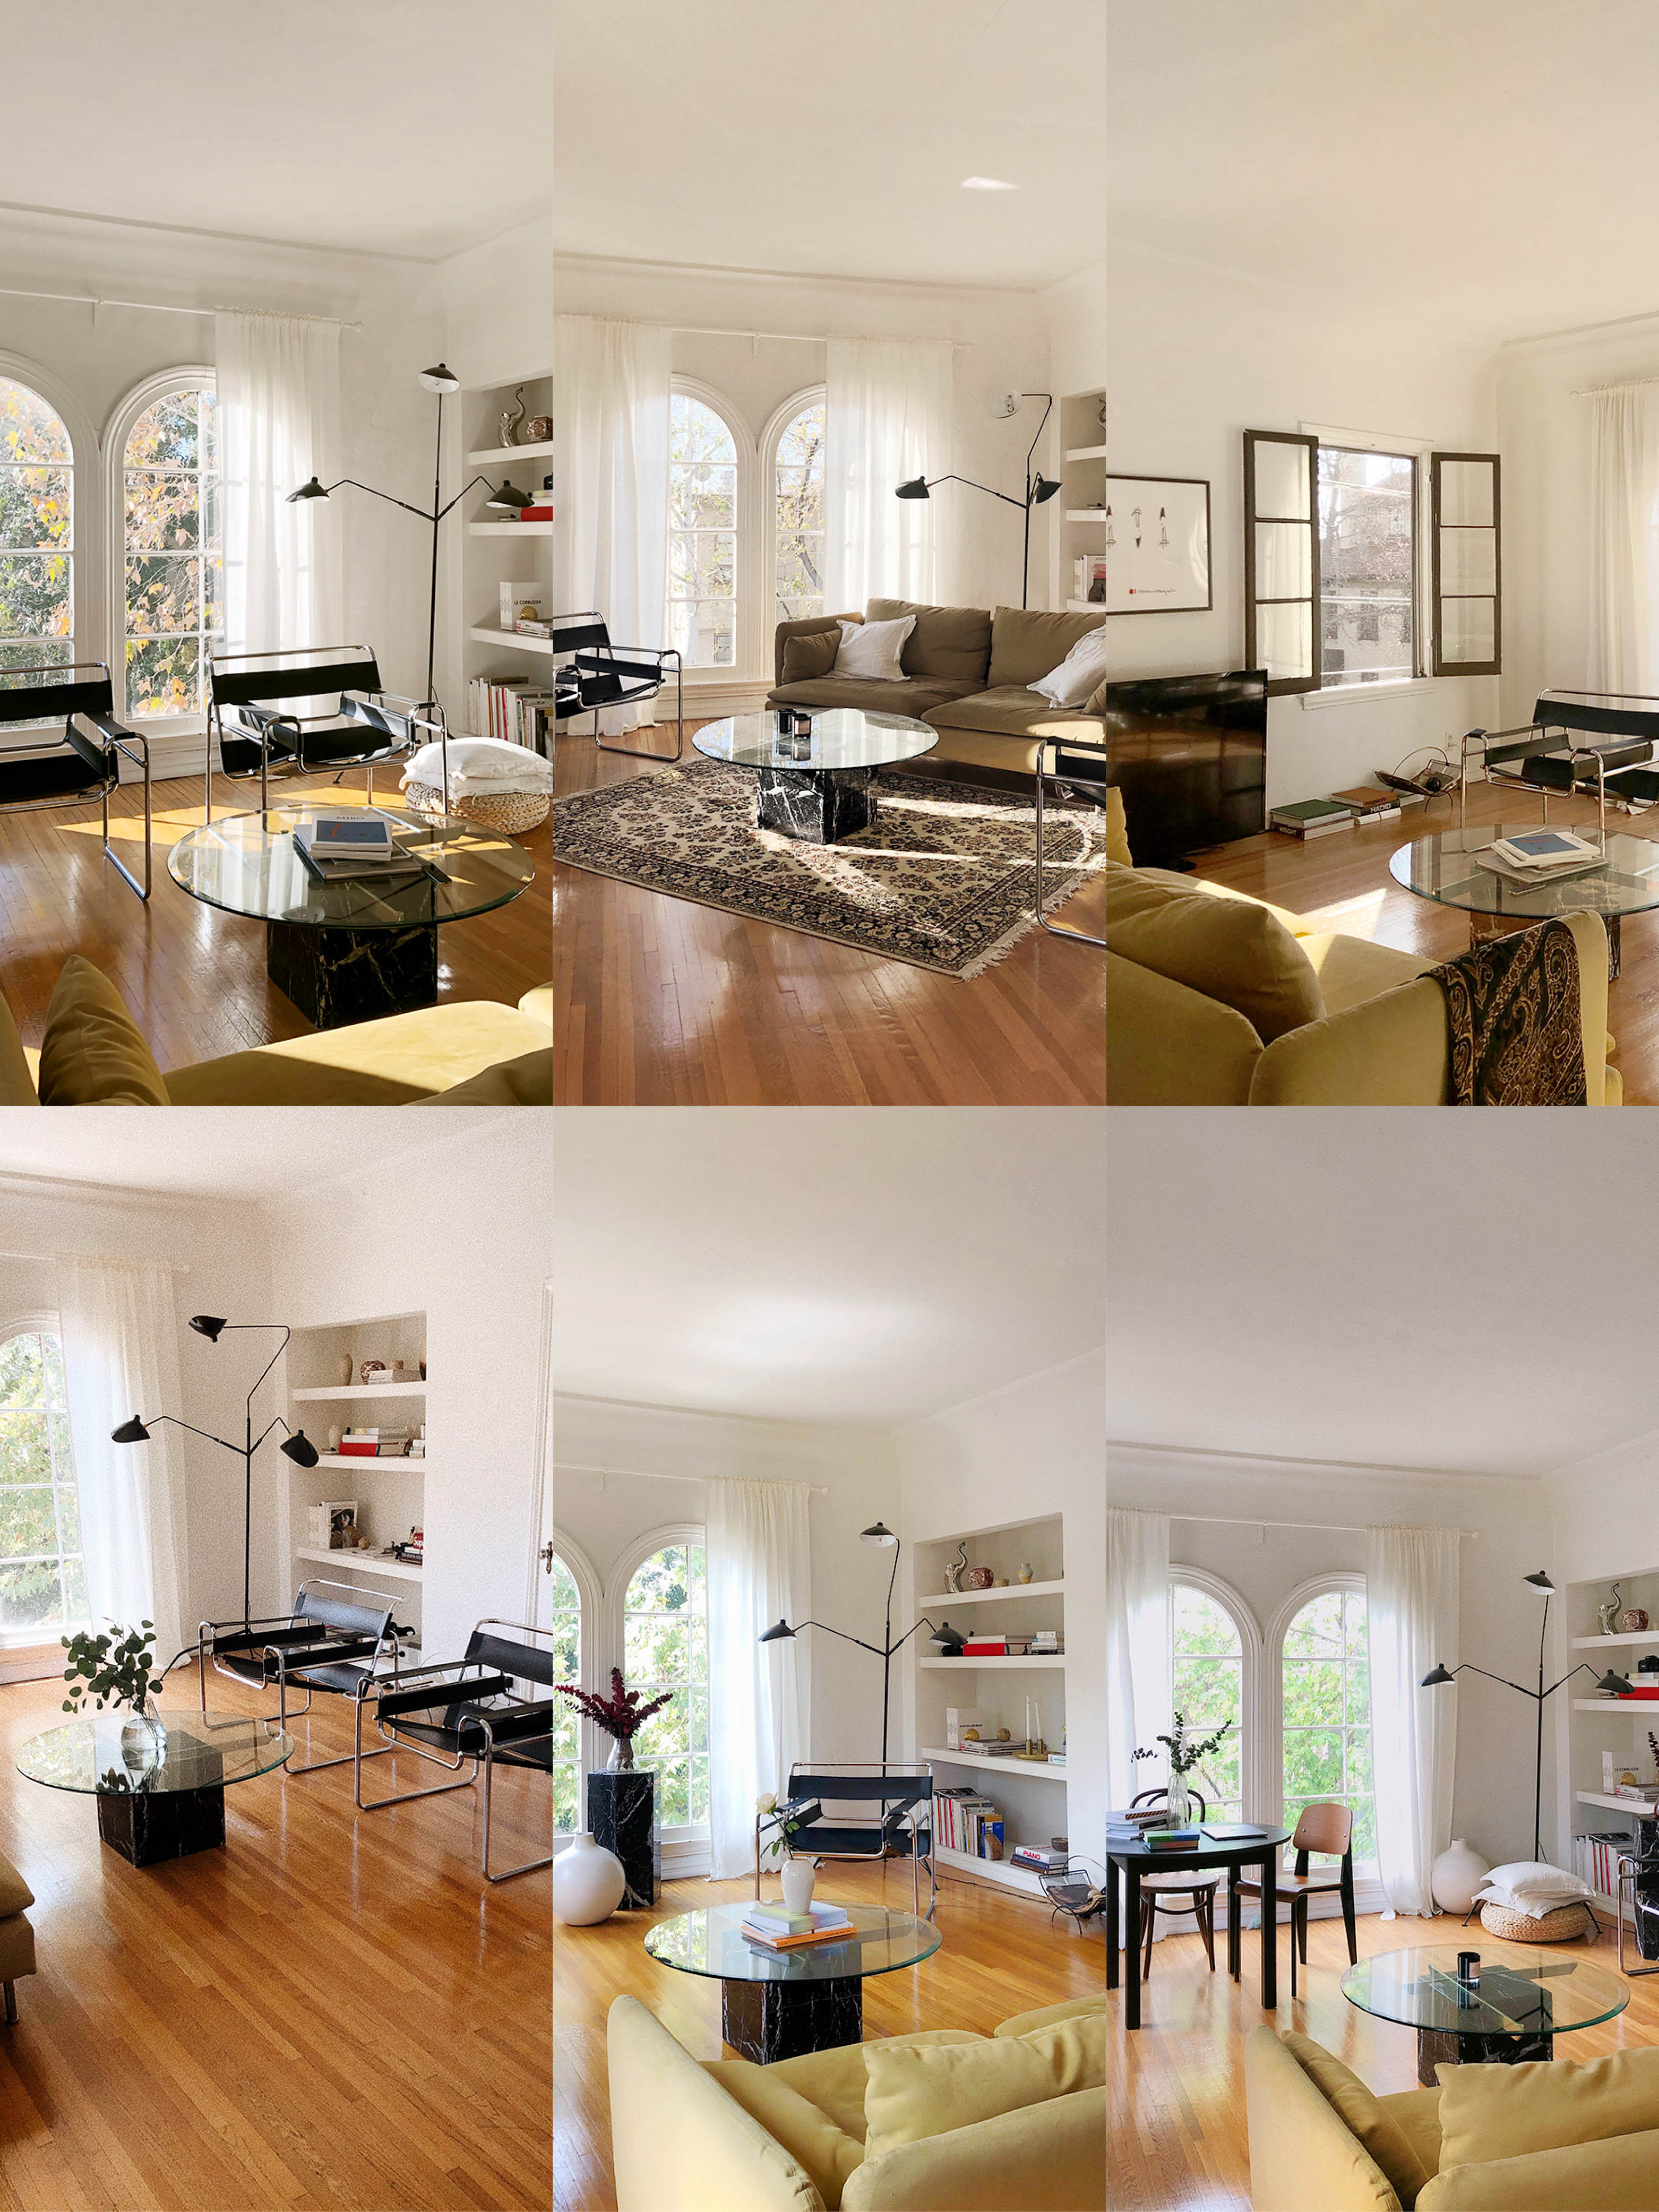 One Living Room, 6 Ways, All With the Same Furniture